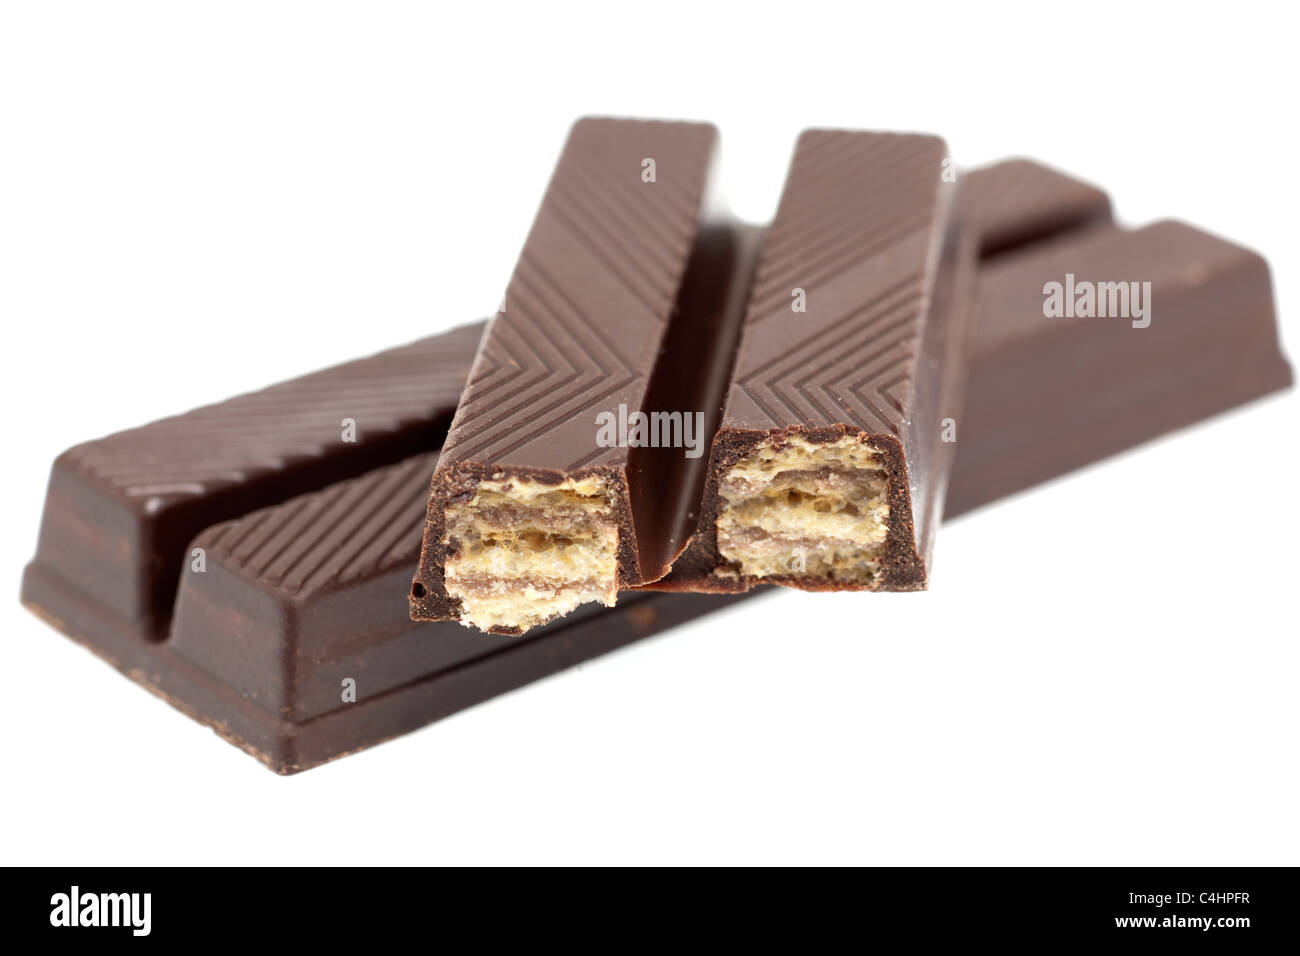 Dark chocolate covered wafer fingers - Stock Image